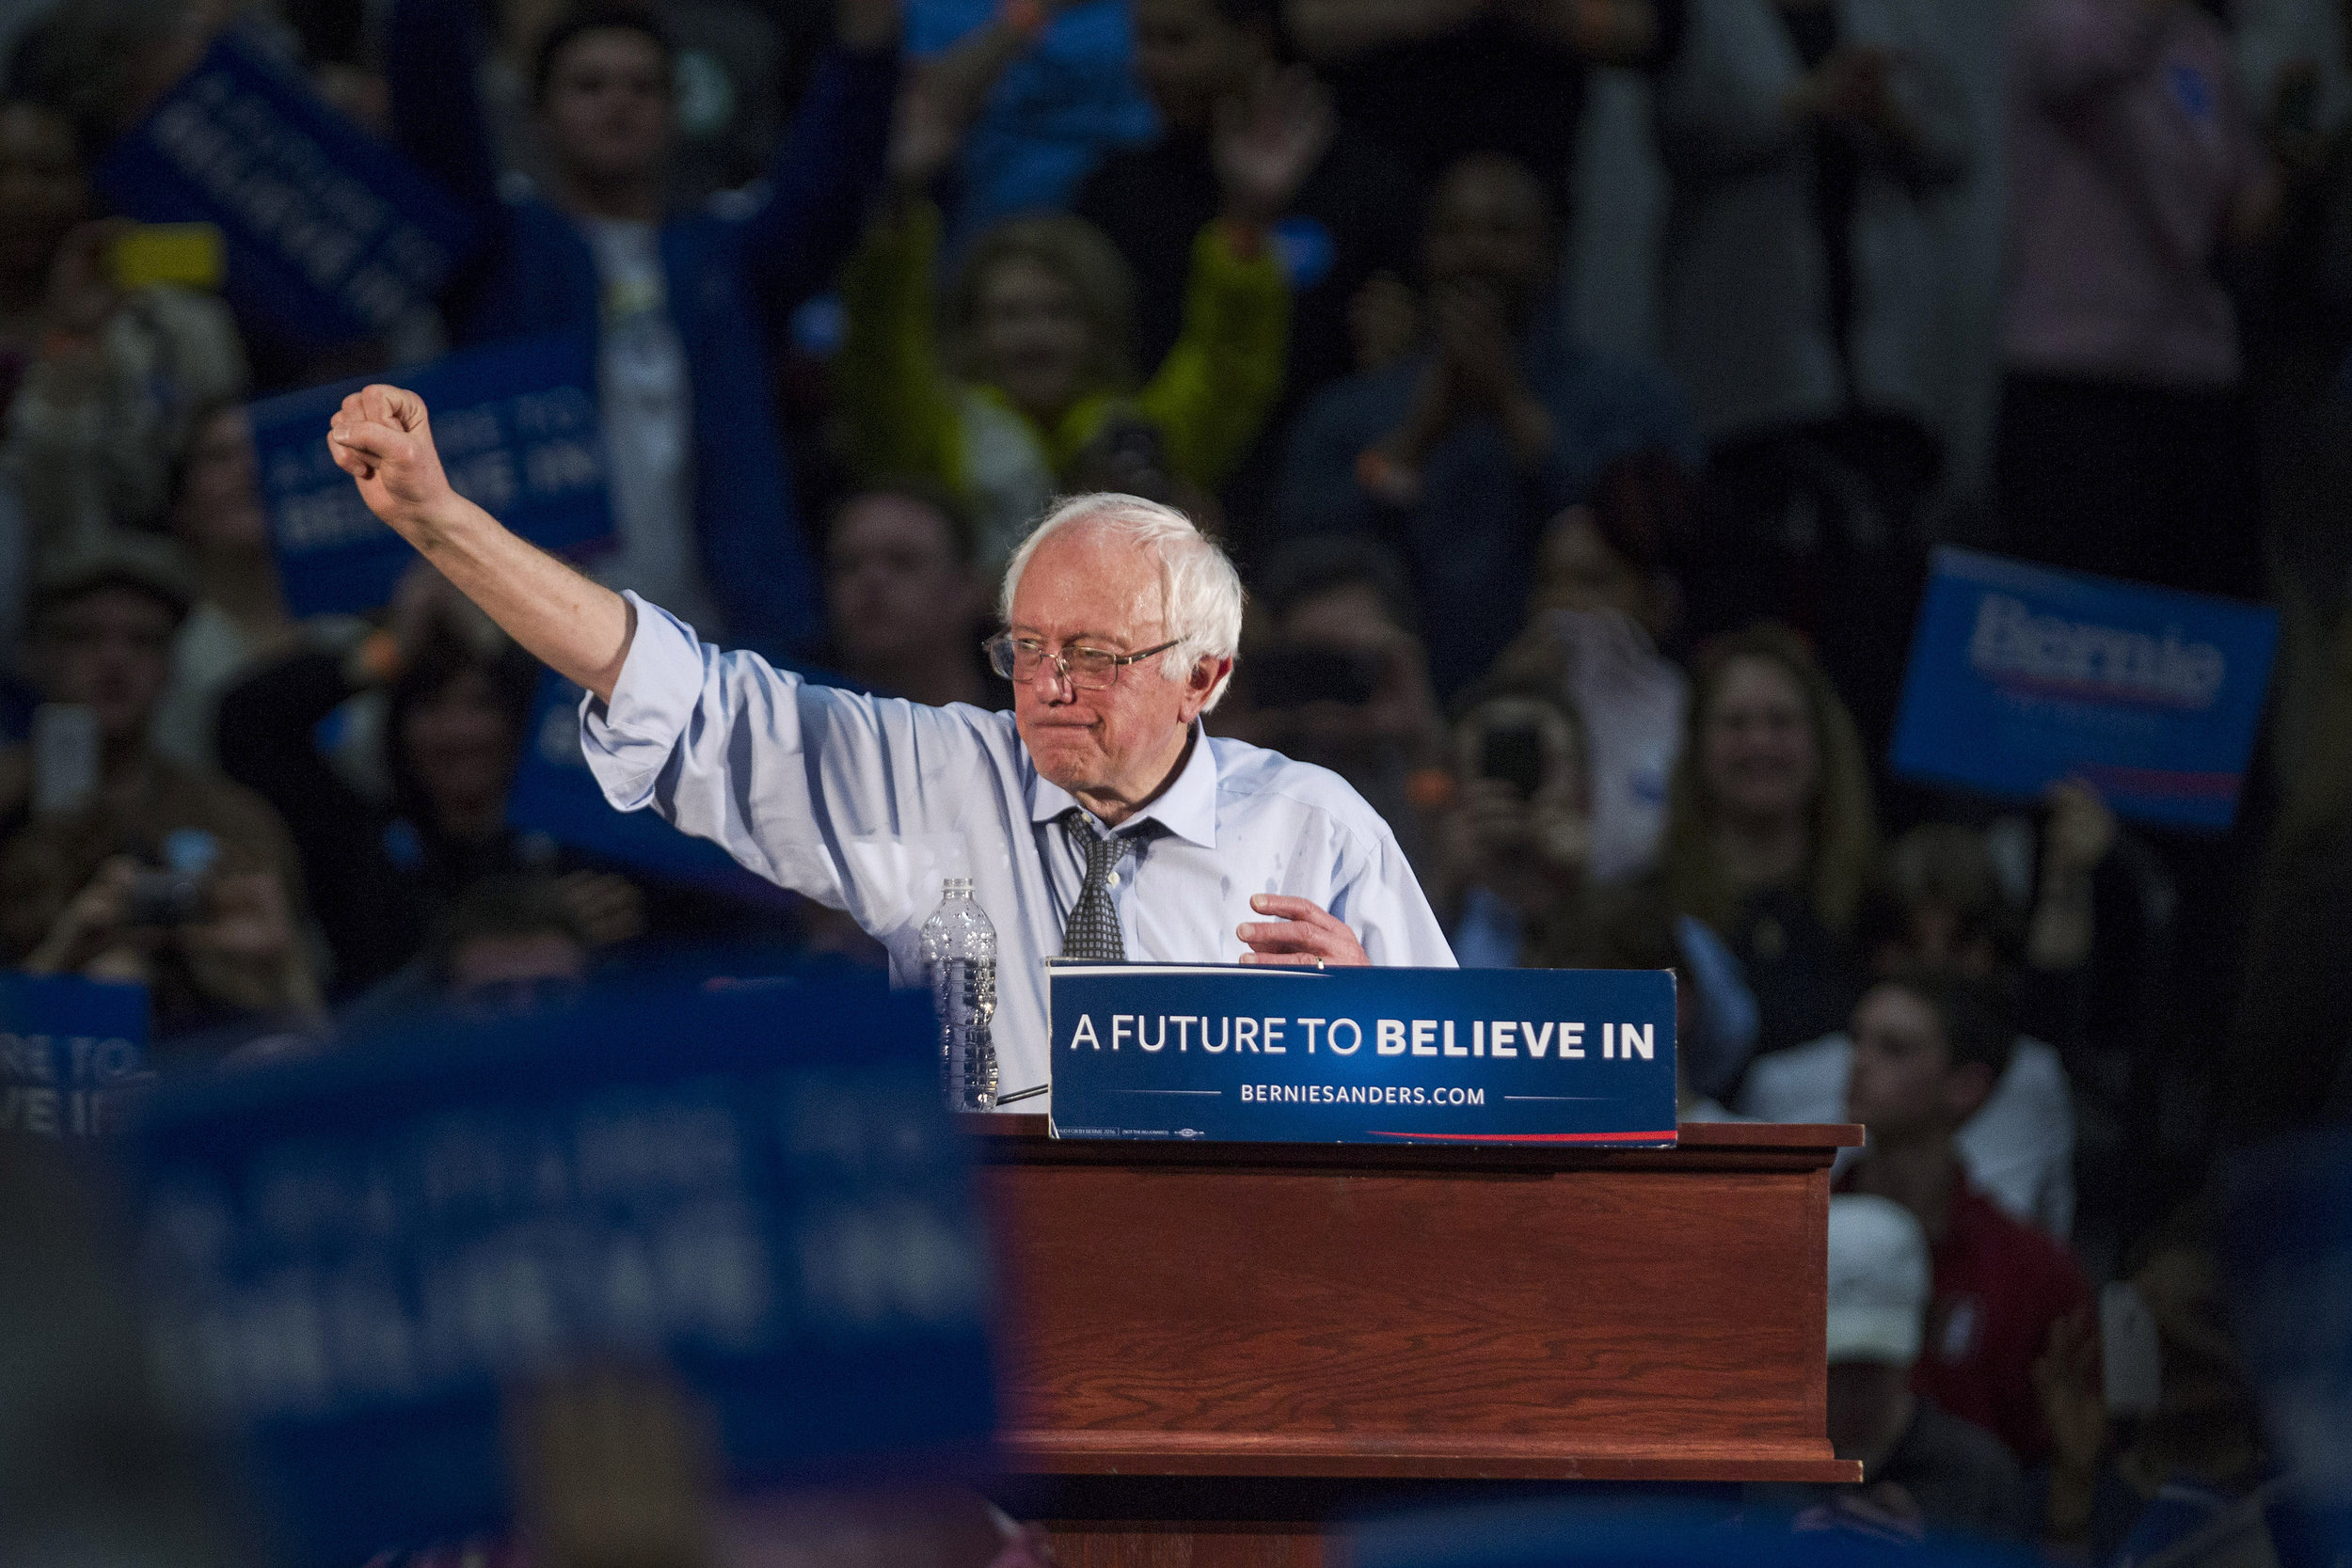 Then-presidential candidate Bernie Sanders speaks at a campaign rally in Massachusetts in February 2016 ( Image )